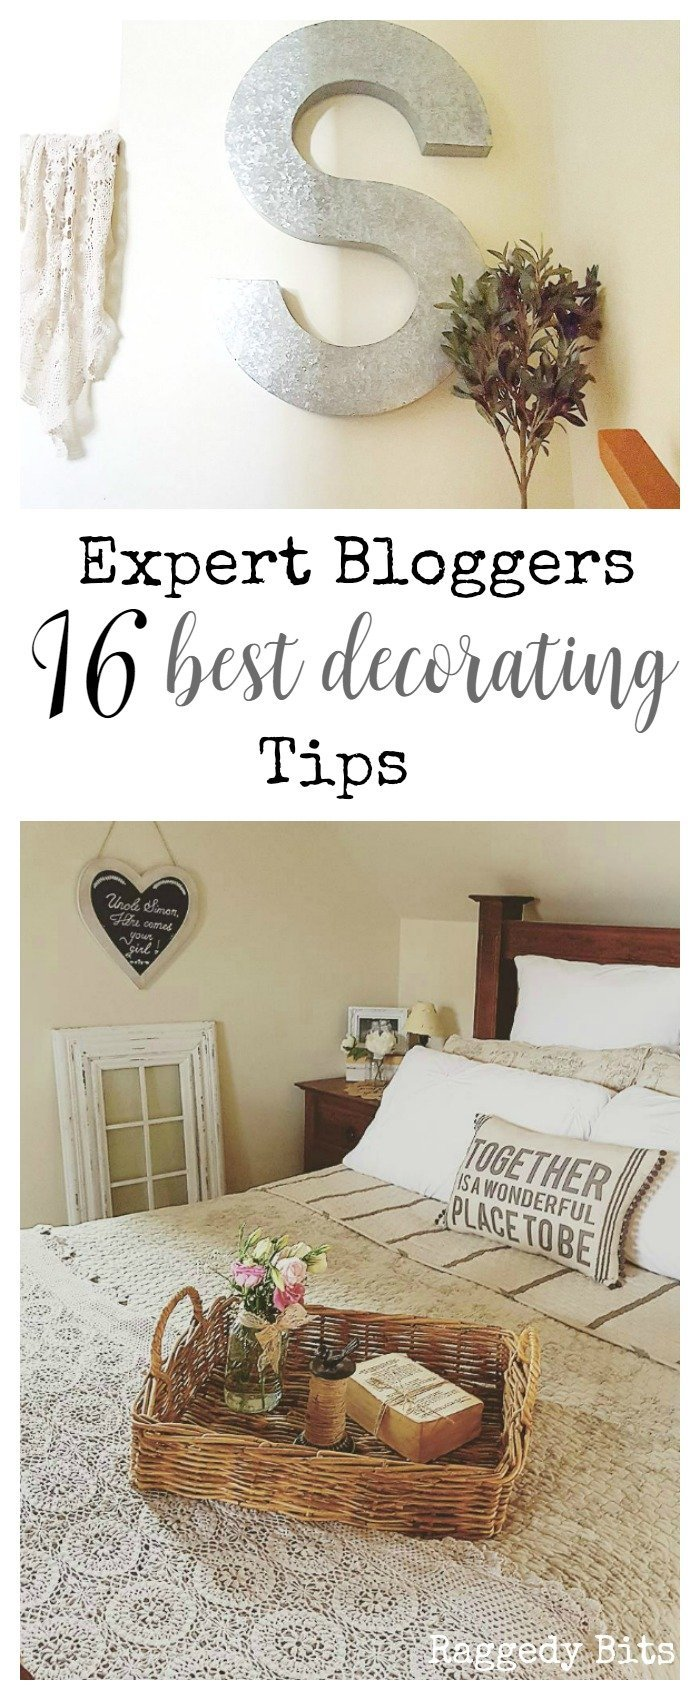 Do you get stuck with decorating? Sharing Expert Bloggers 16 Decorating Tips no matter what your style is | www.raggedy-bits.com